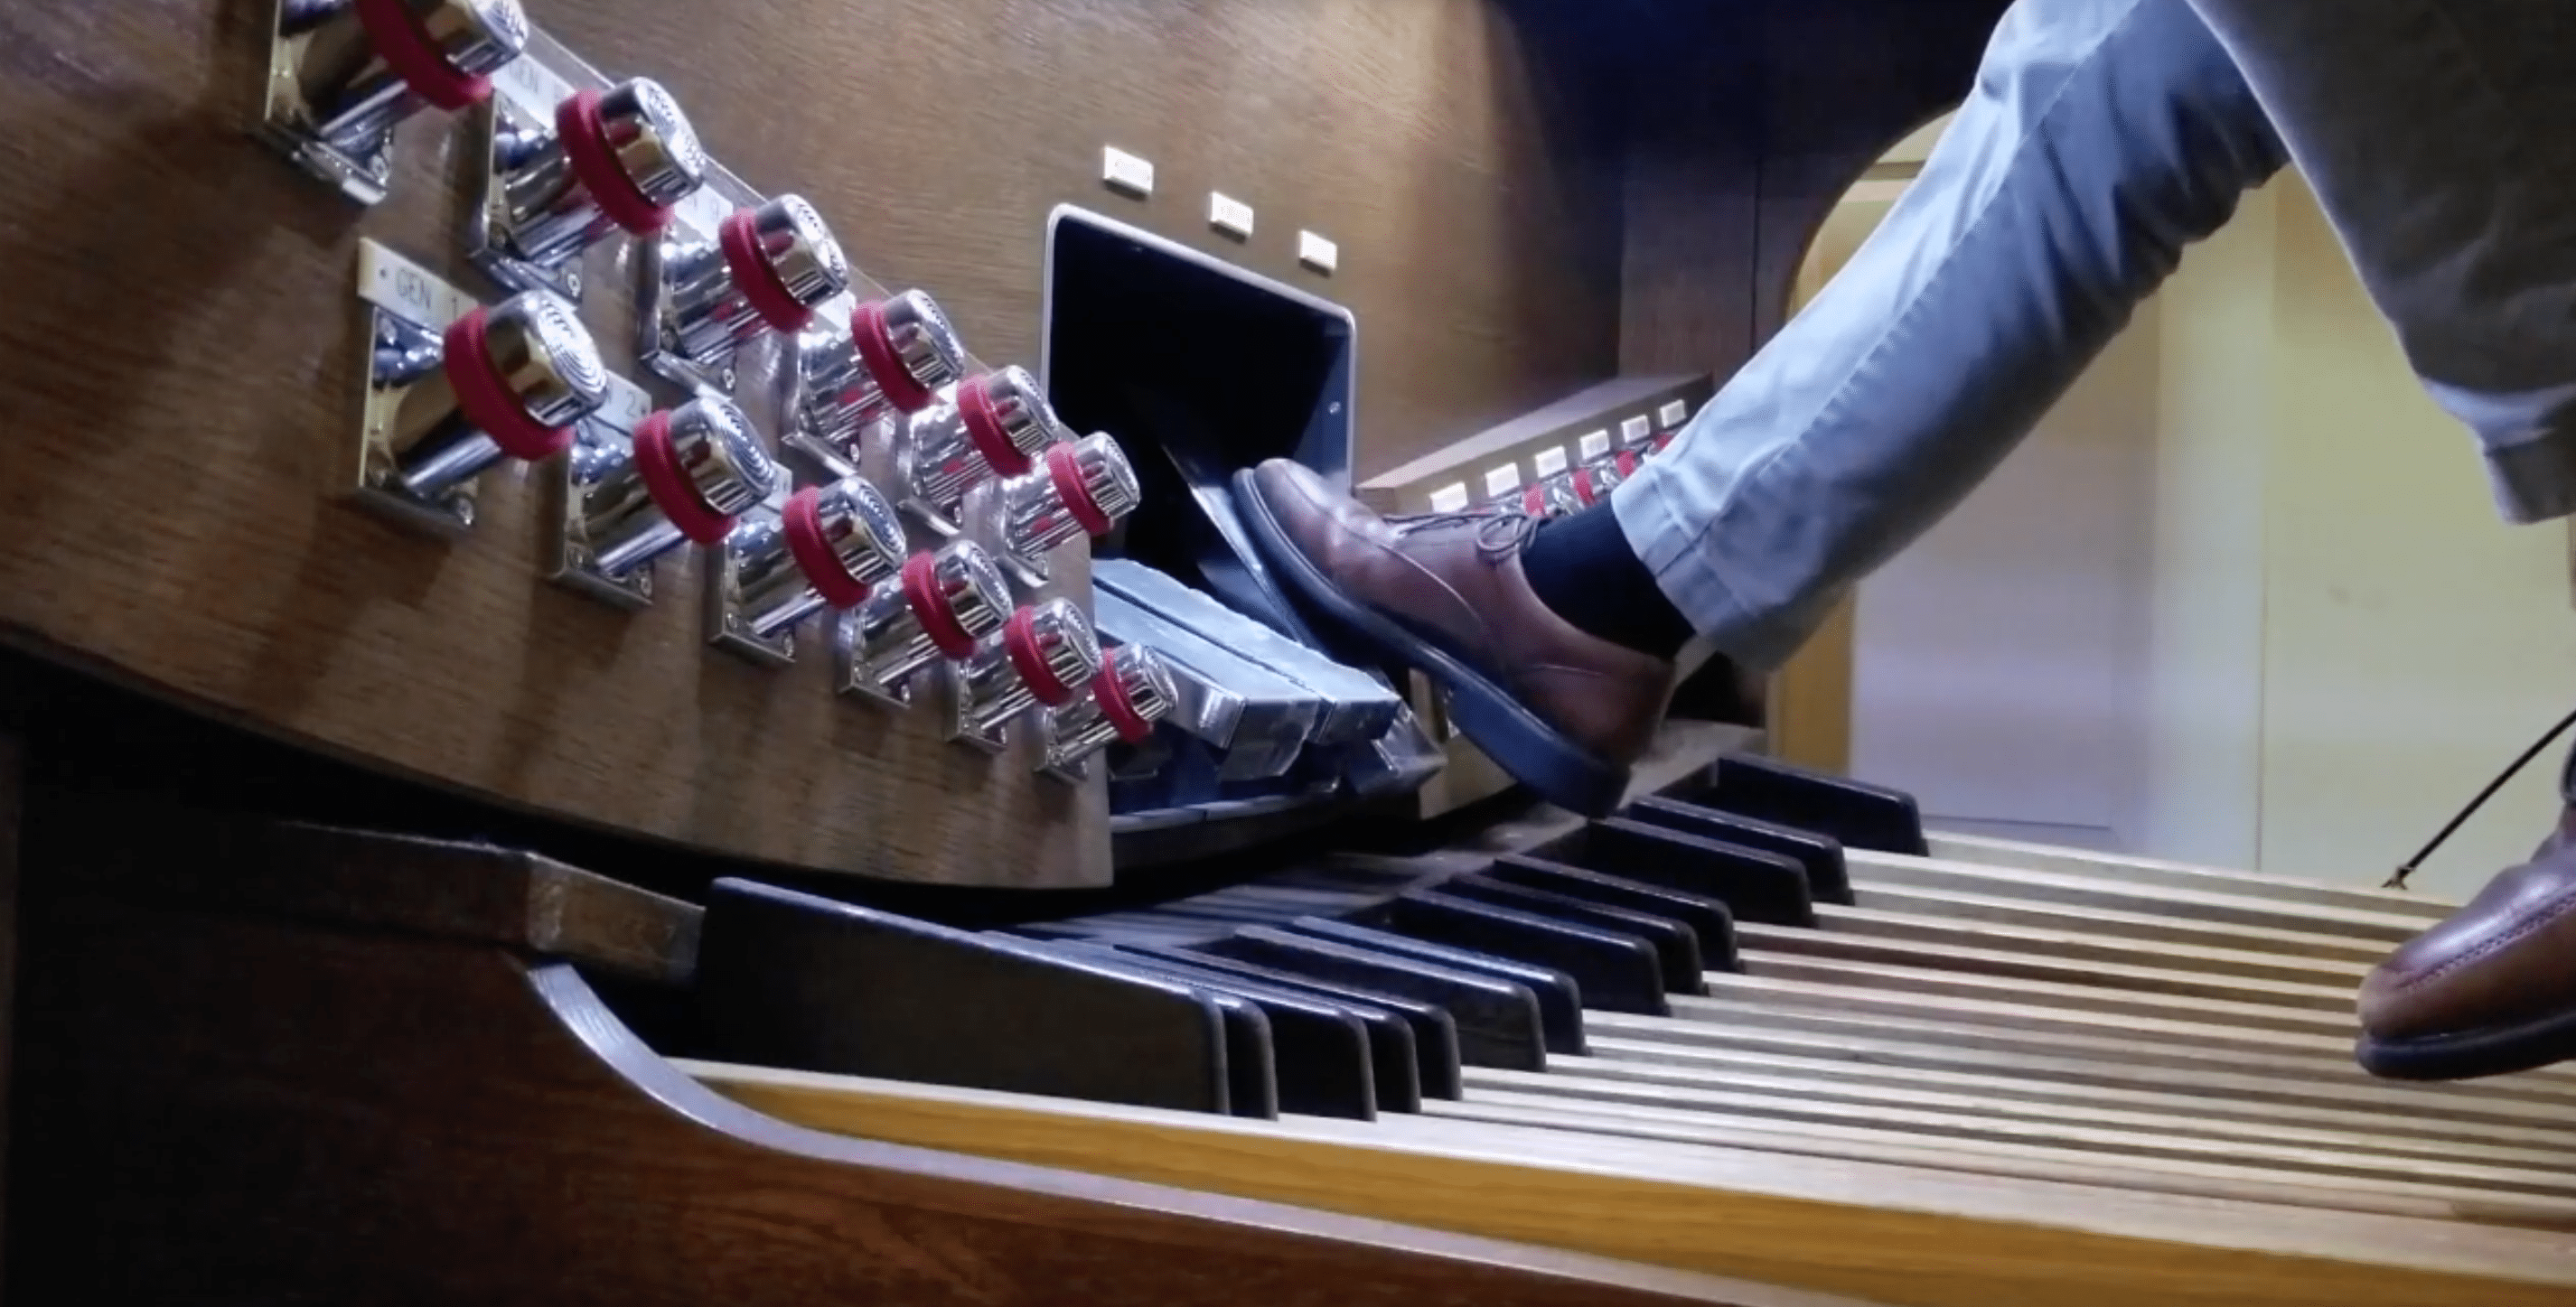 Expression pedals on an organ